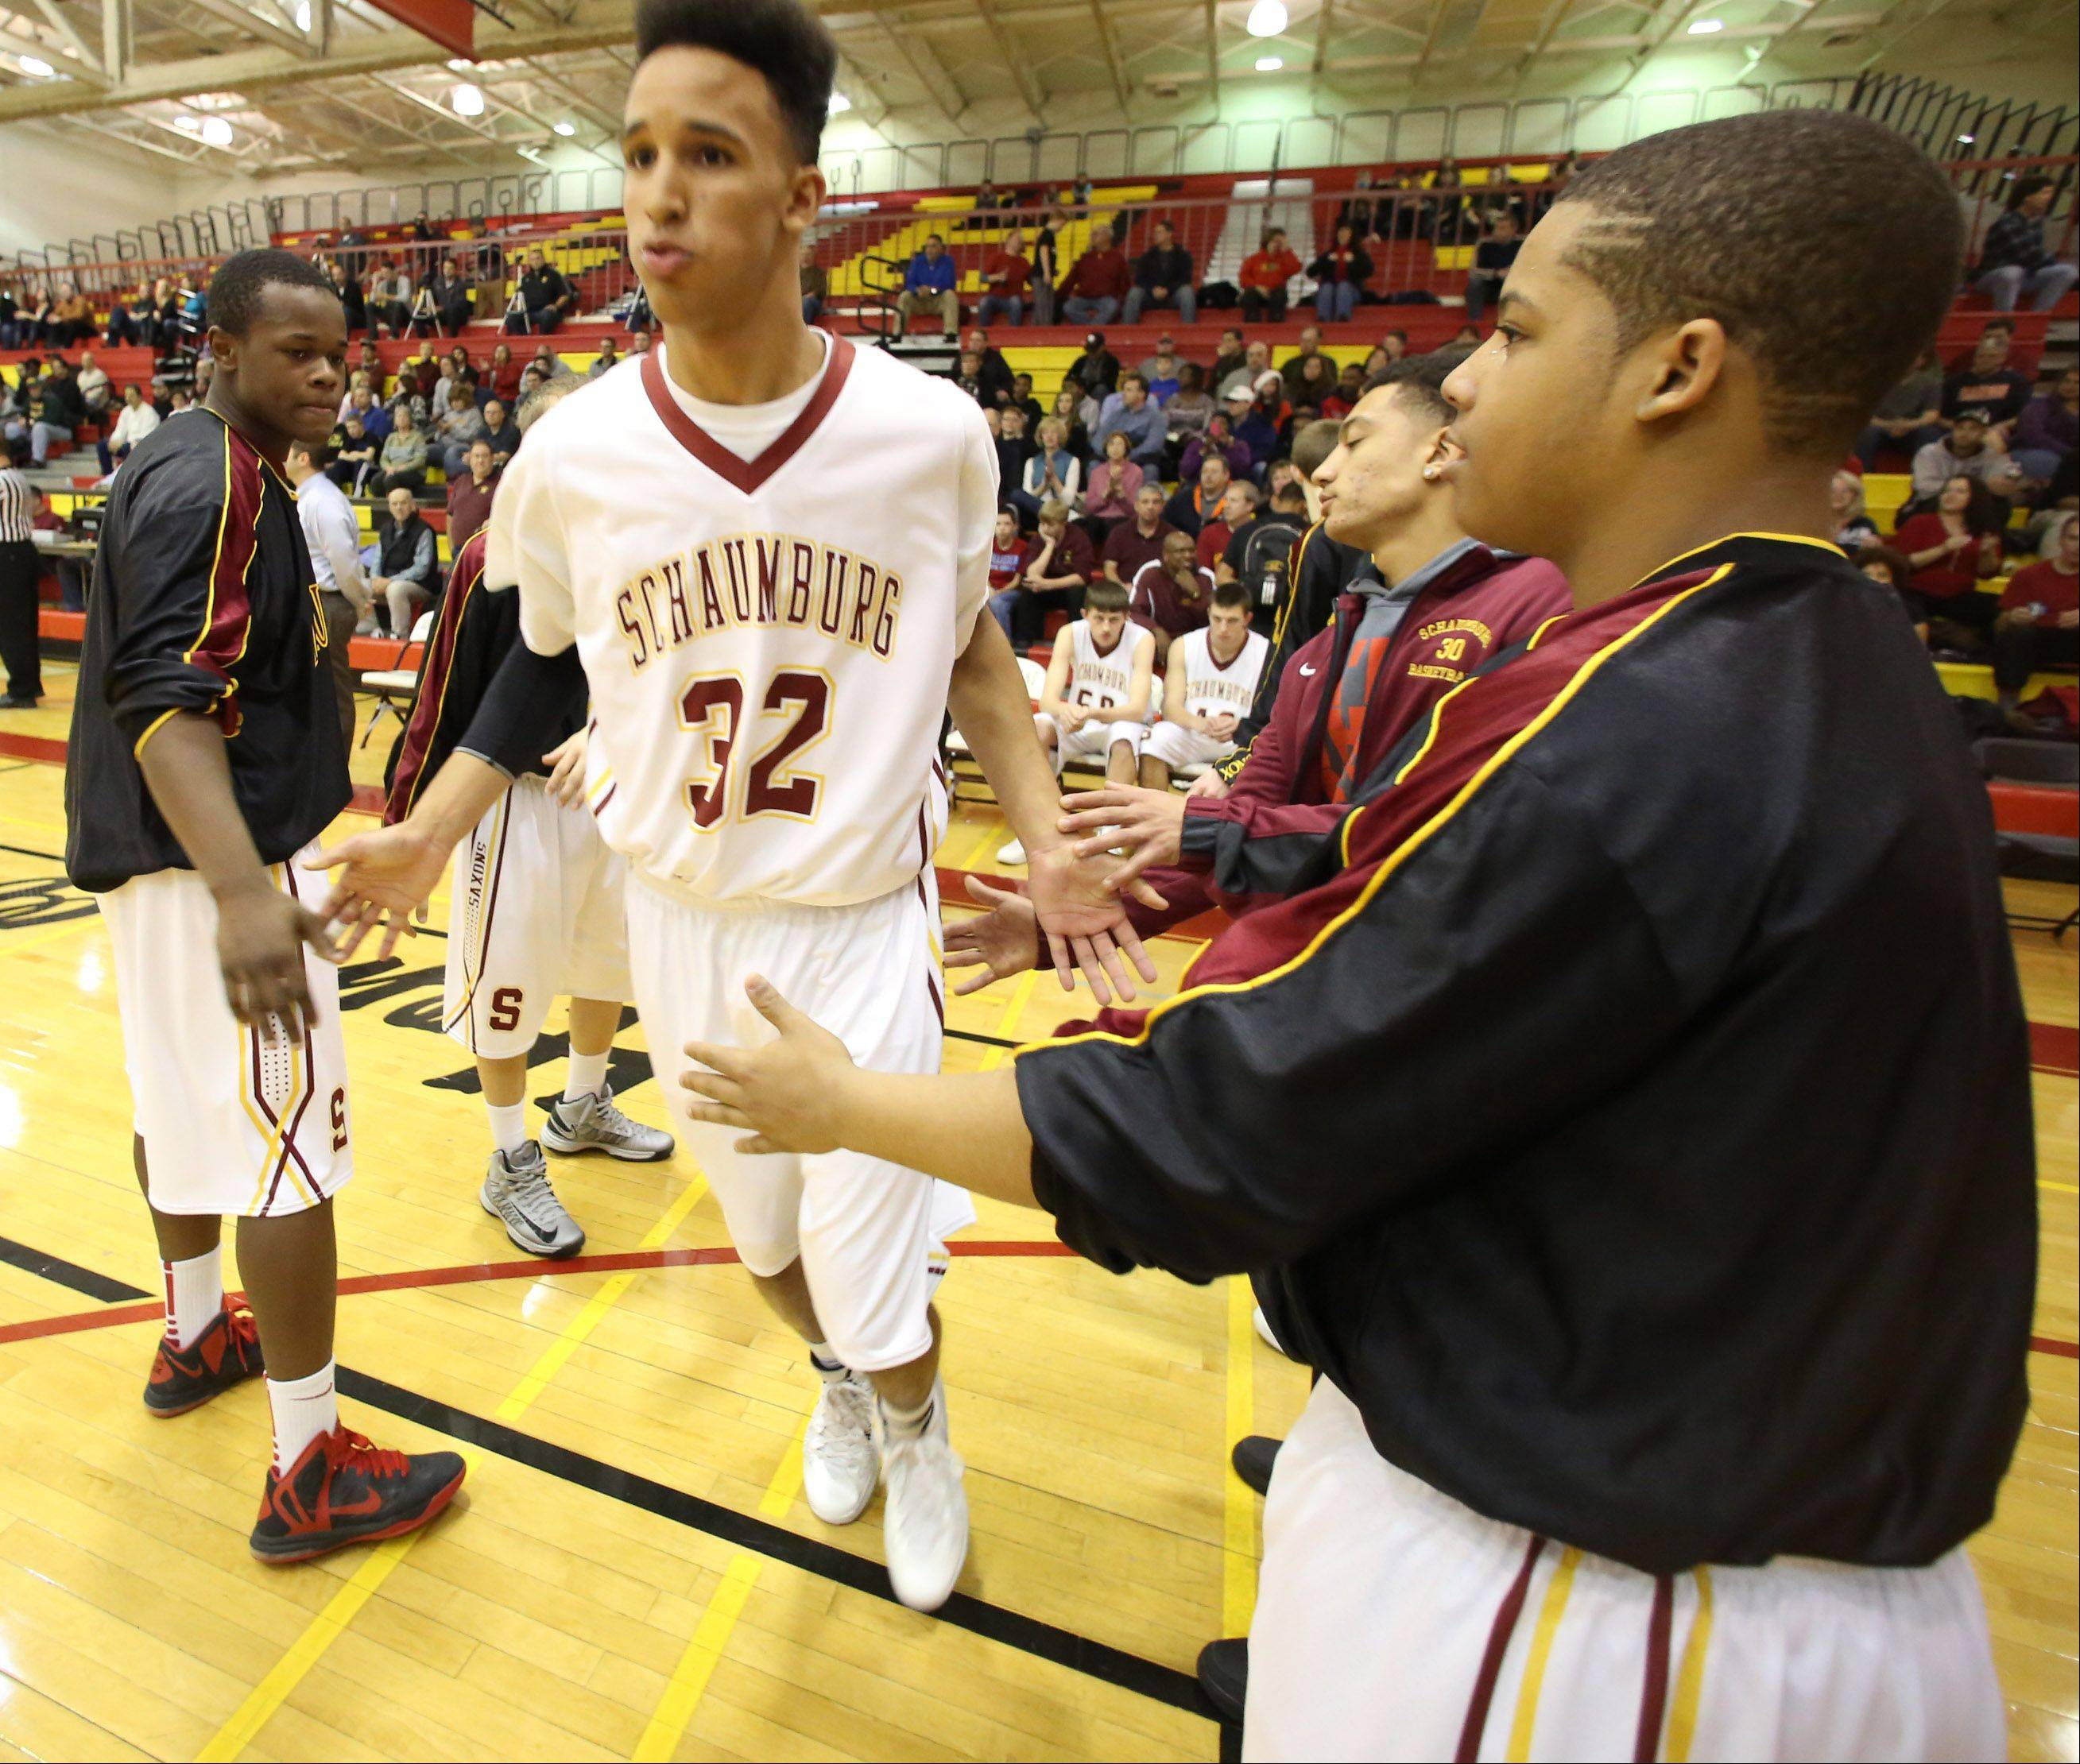 Photos from the Schaumburg vs. Fremd boys basketball game on Friday, December 20th, in Schaumburg.